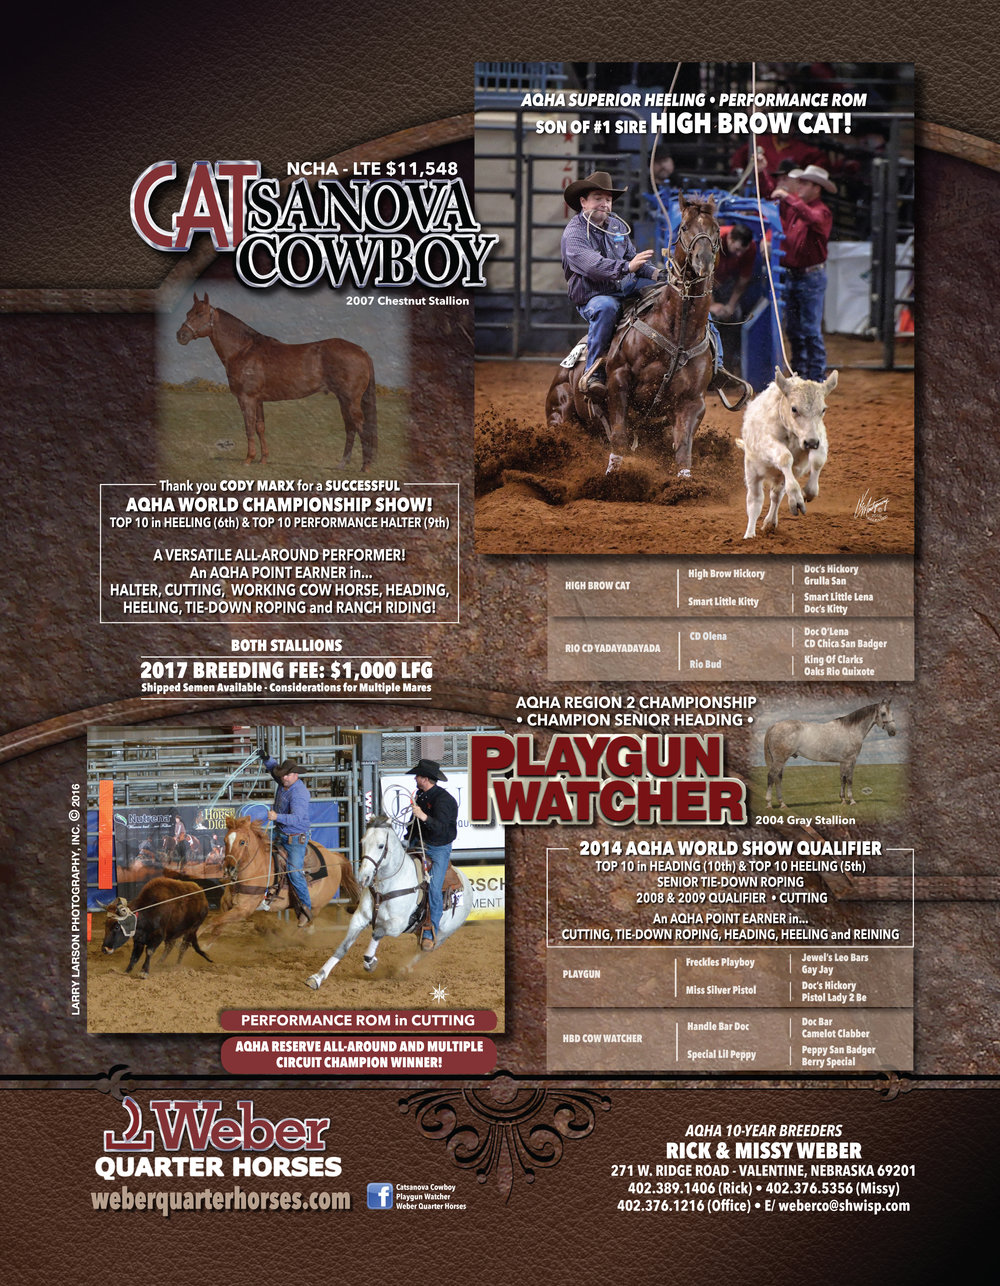 Weber Quarter Horses is proud to stand Playgun Watcher and Catsanova Cowboy